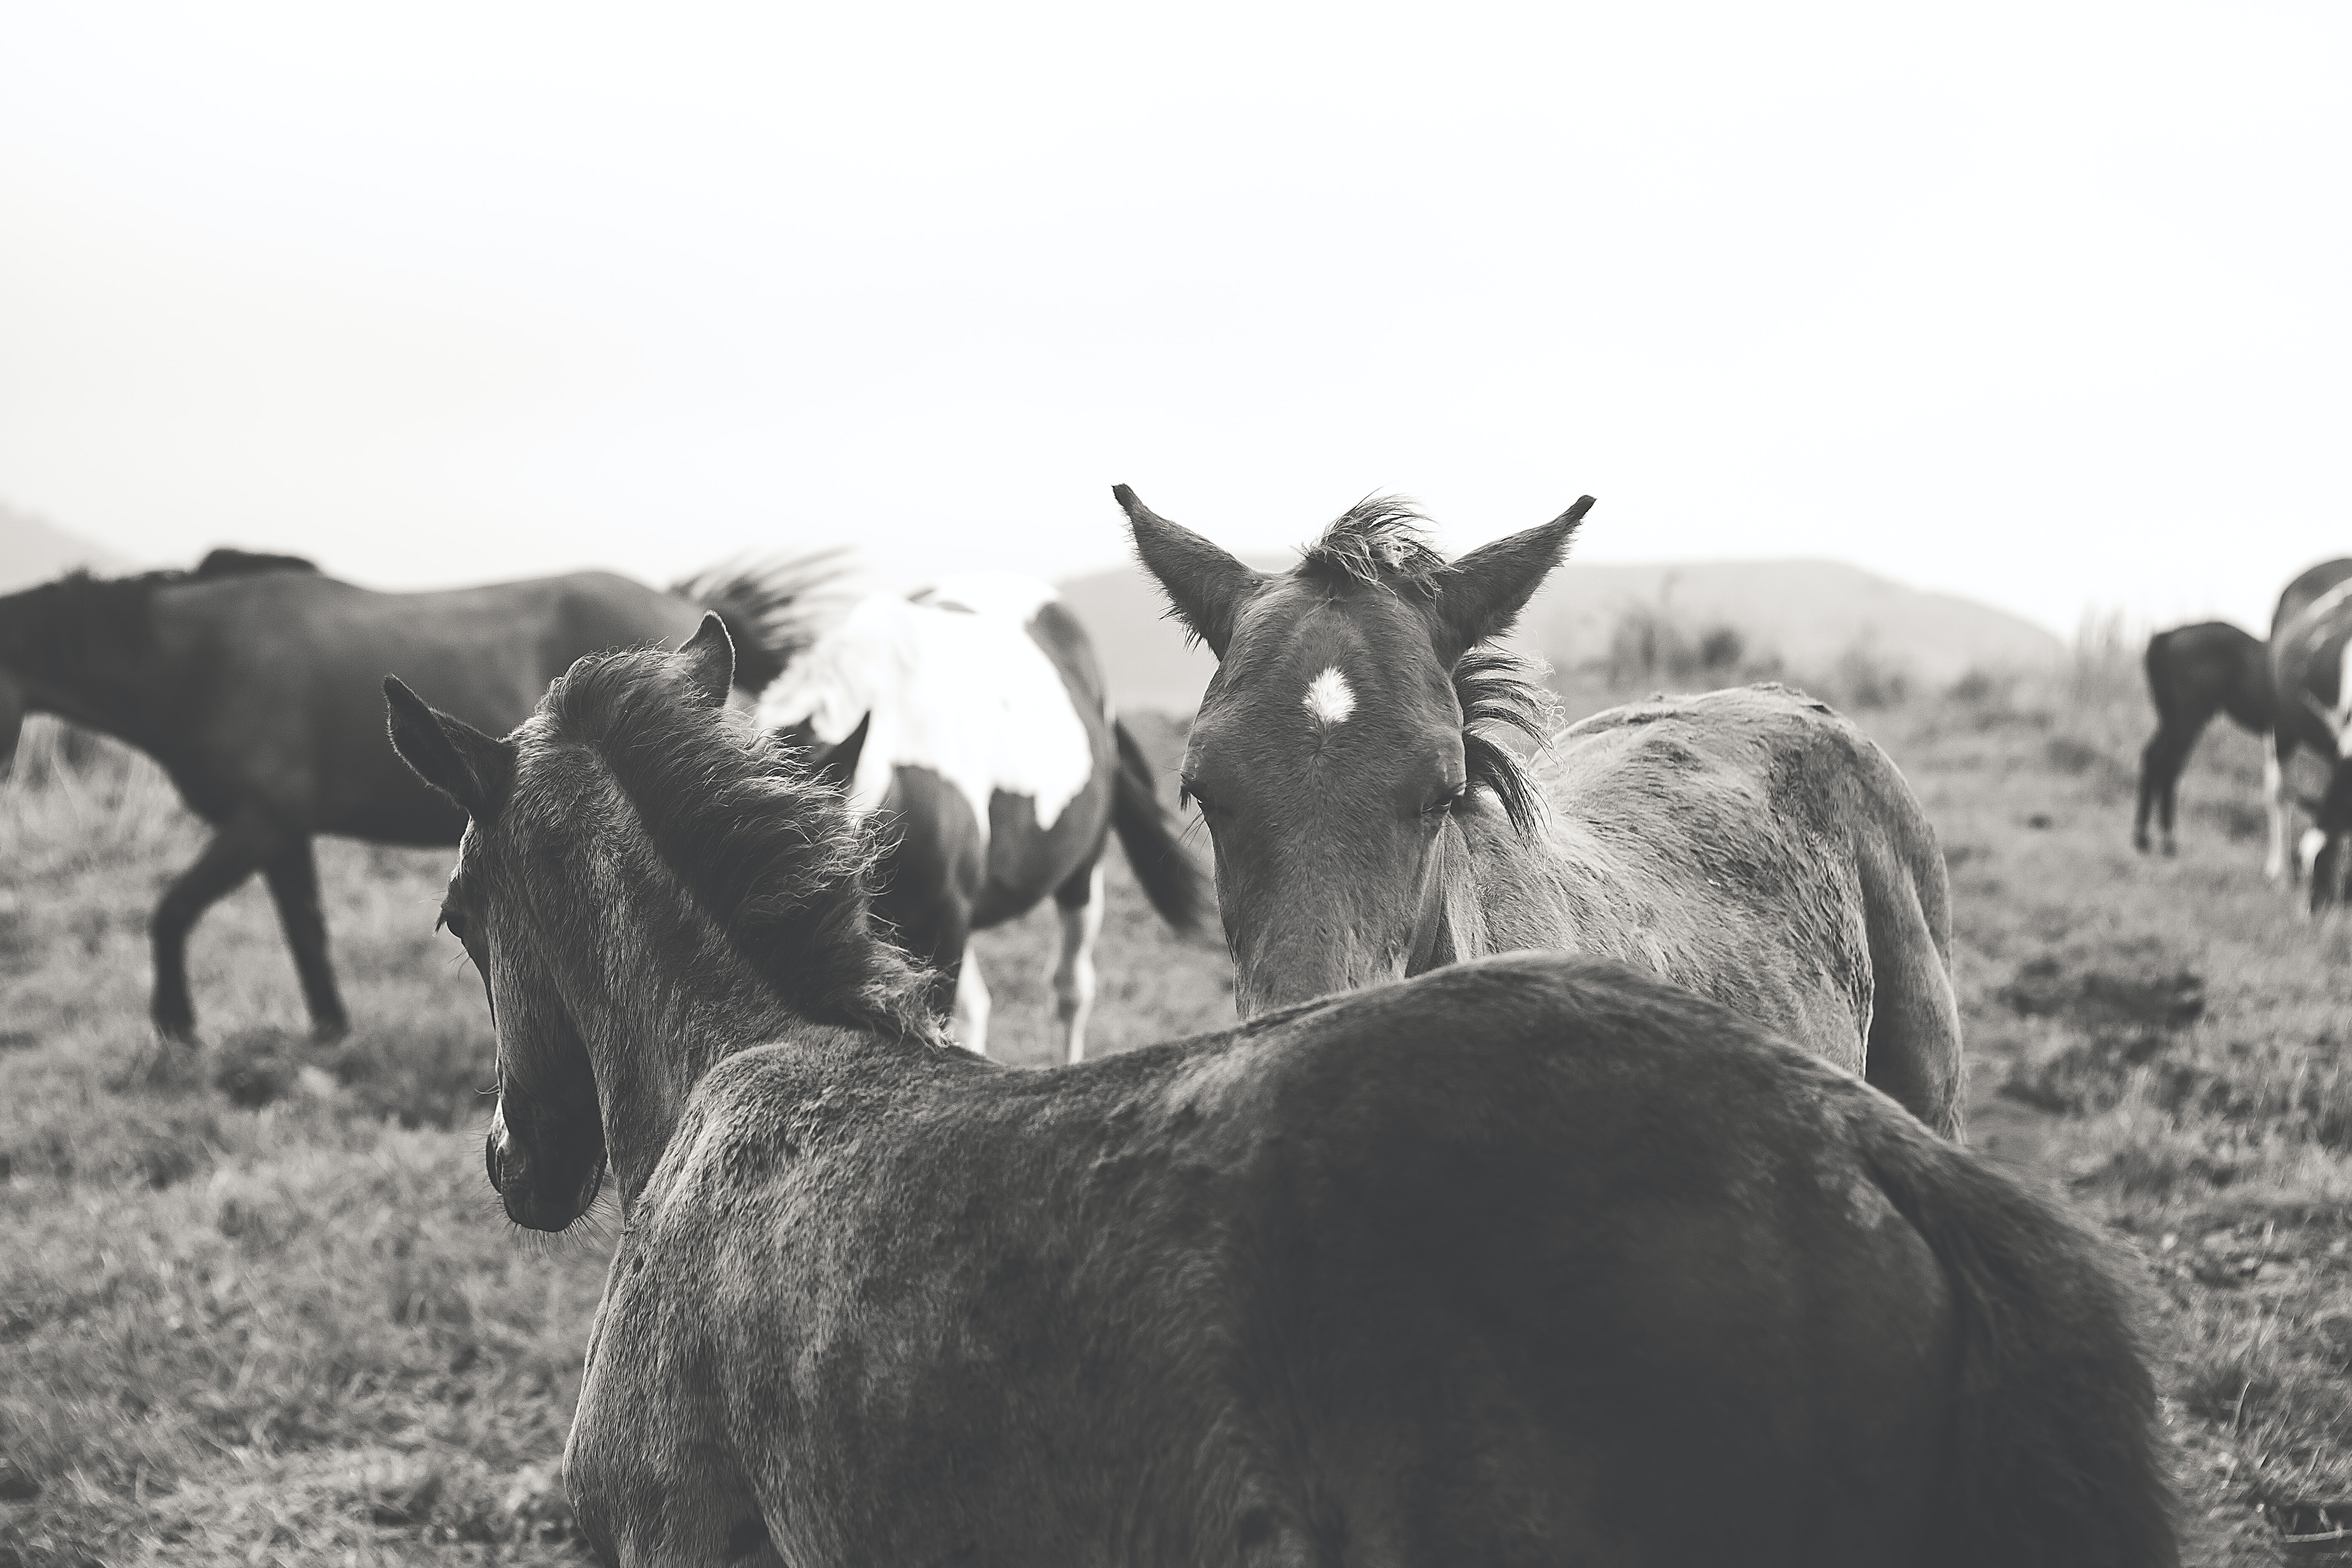 grayscale horse photo